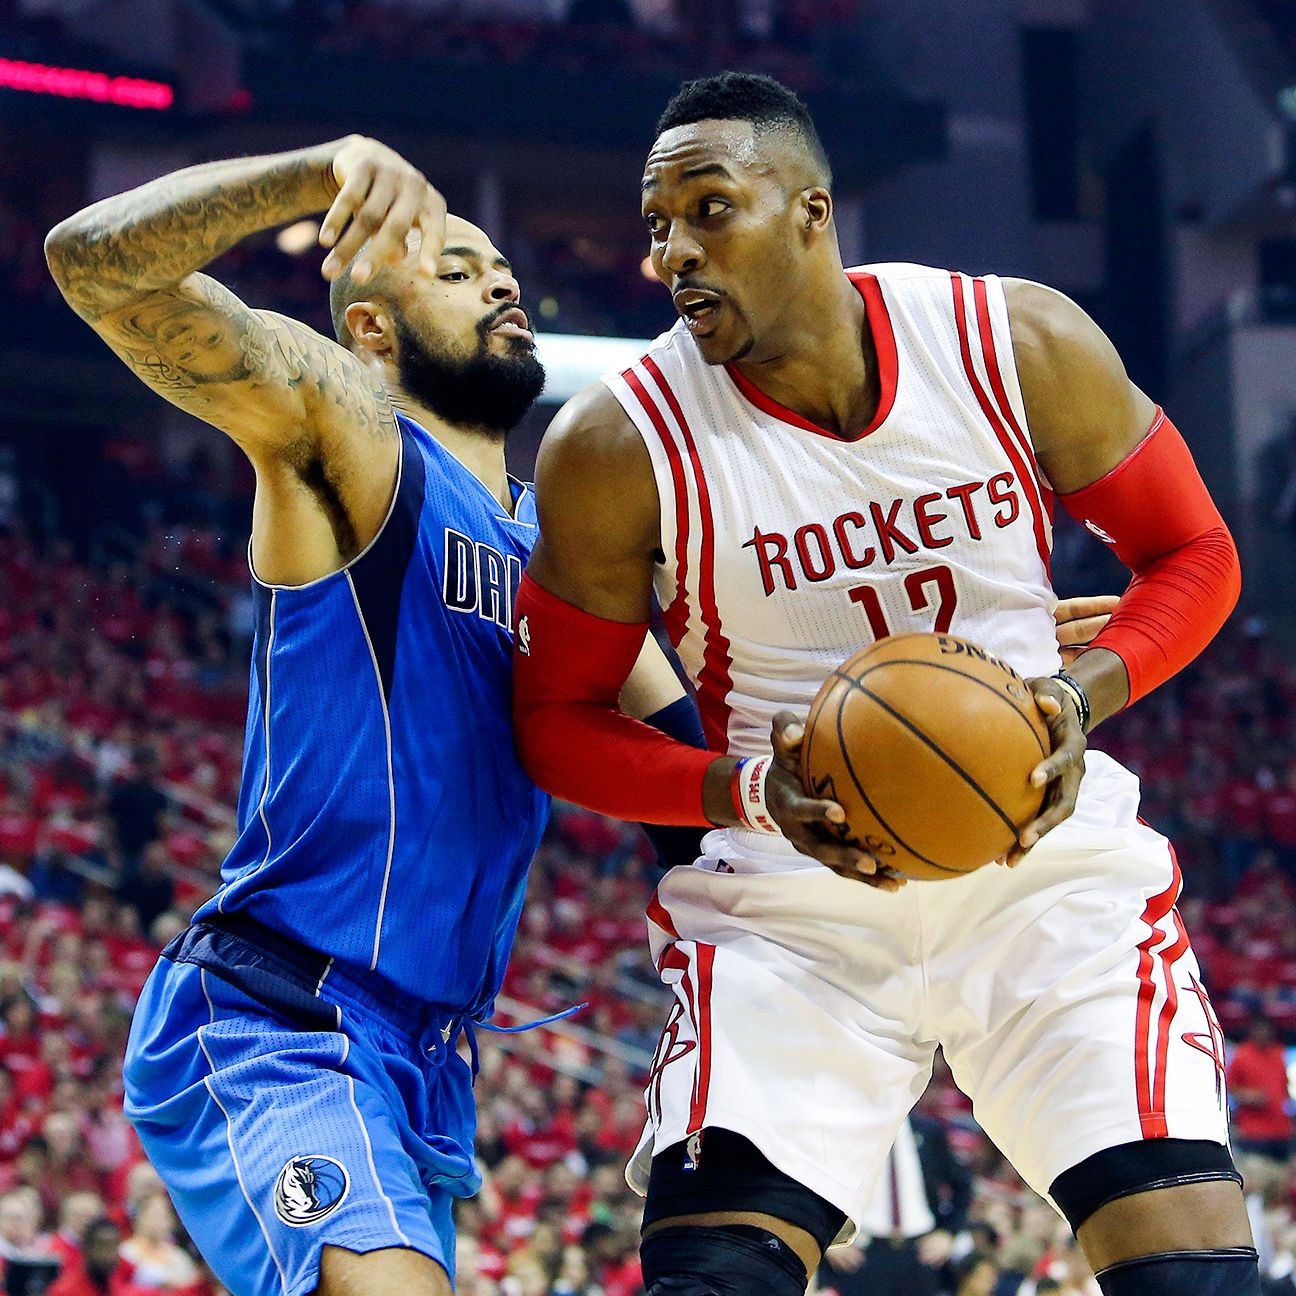 Houston Rockets Where To Watch The Upcoming Match Espn: Hakeem Confident In Rockets' Chances